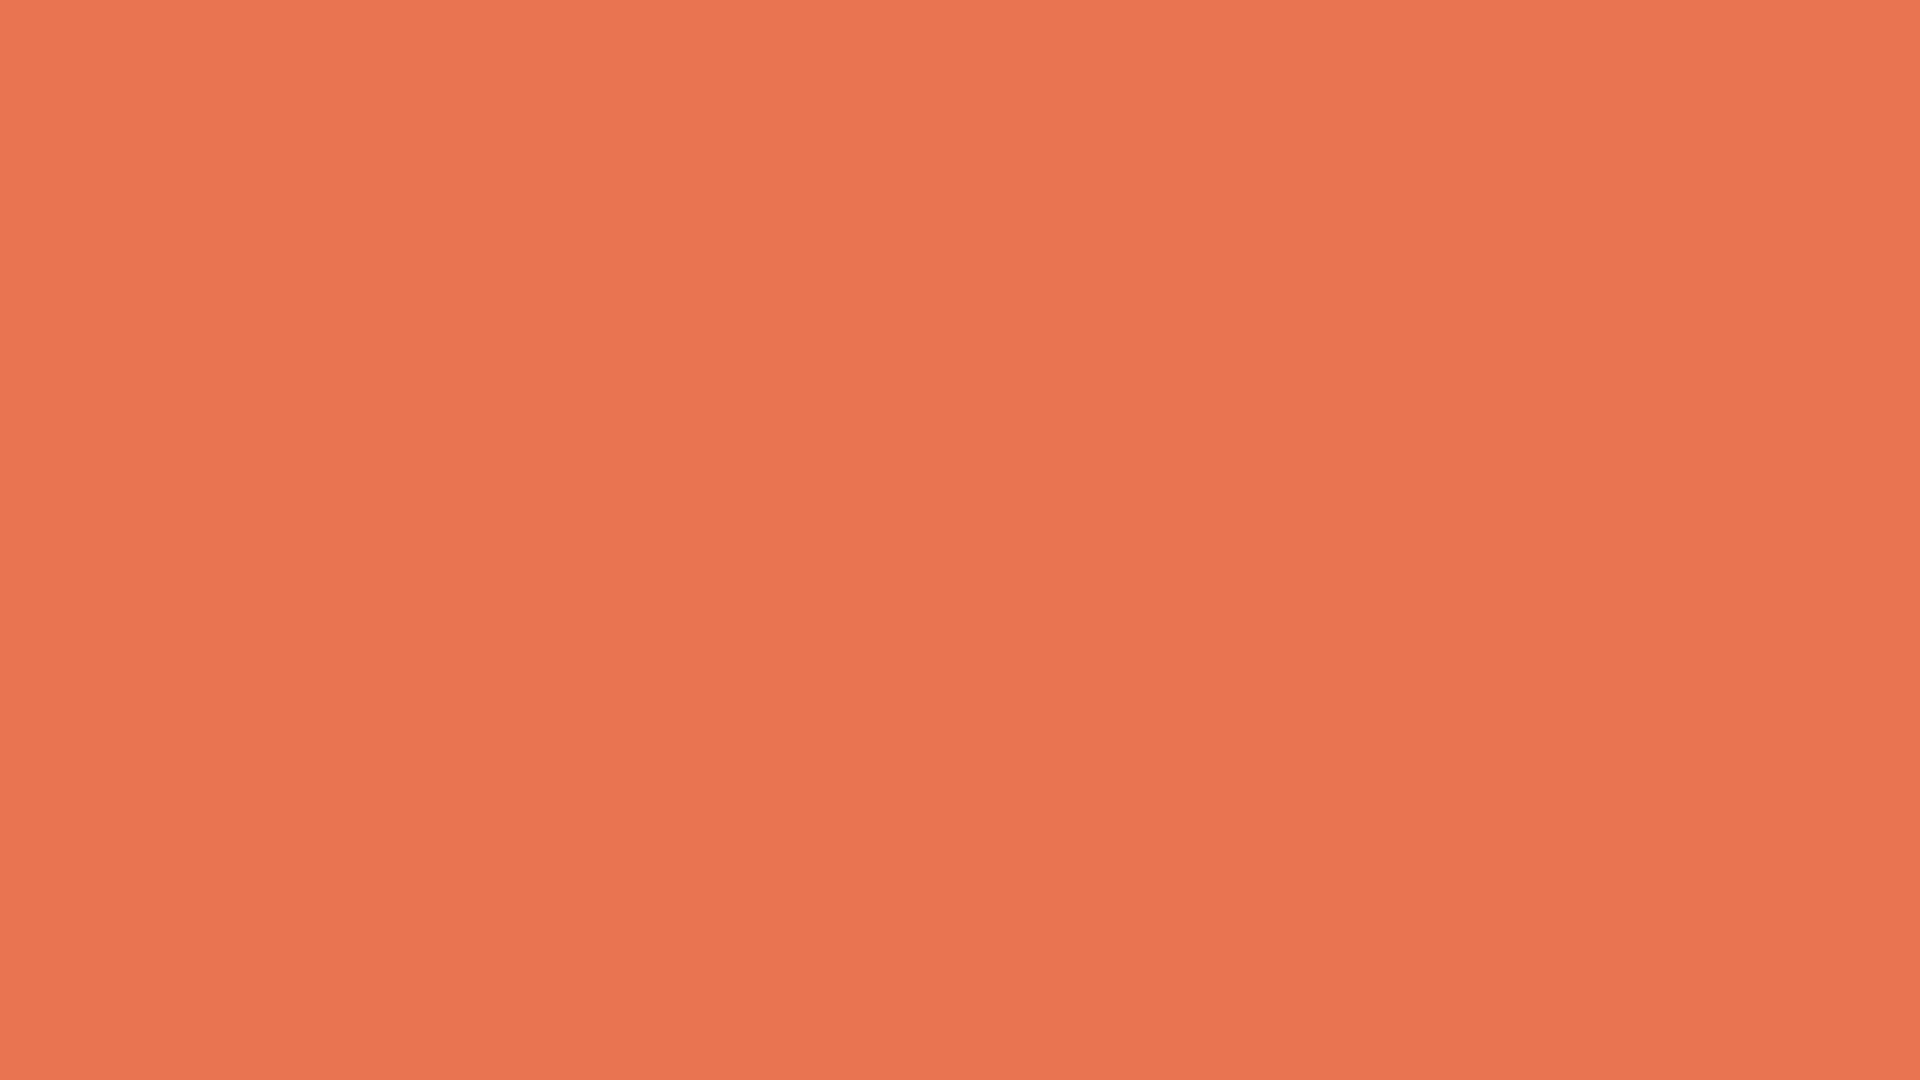 1920x1080 Burnt Sienna Solid Color Background